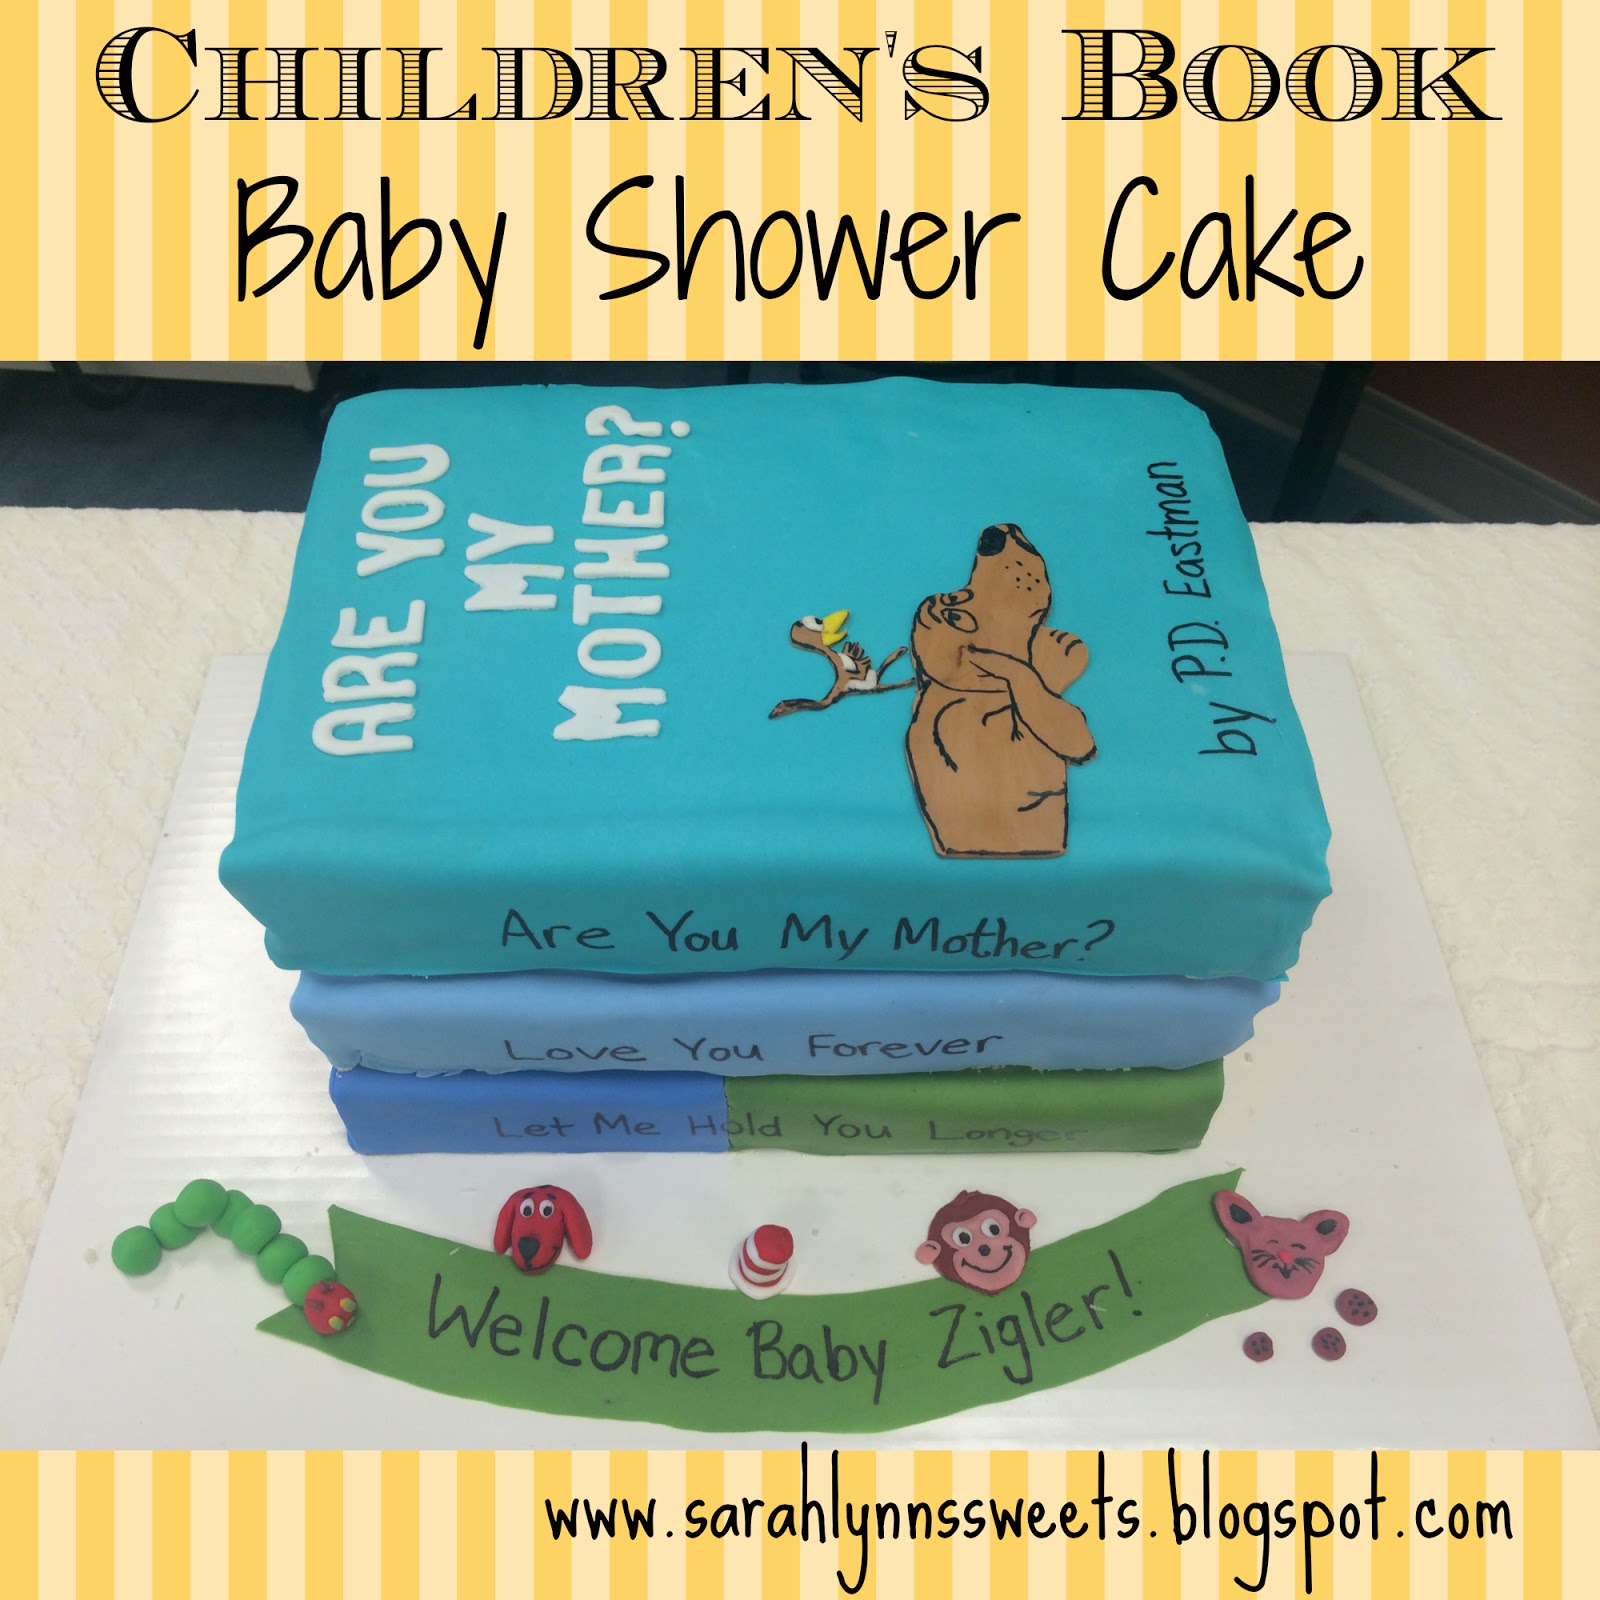 Childrenu0027s Book Baby Shower Cake